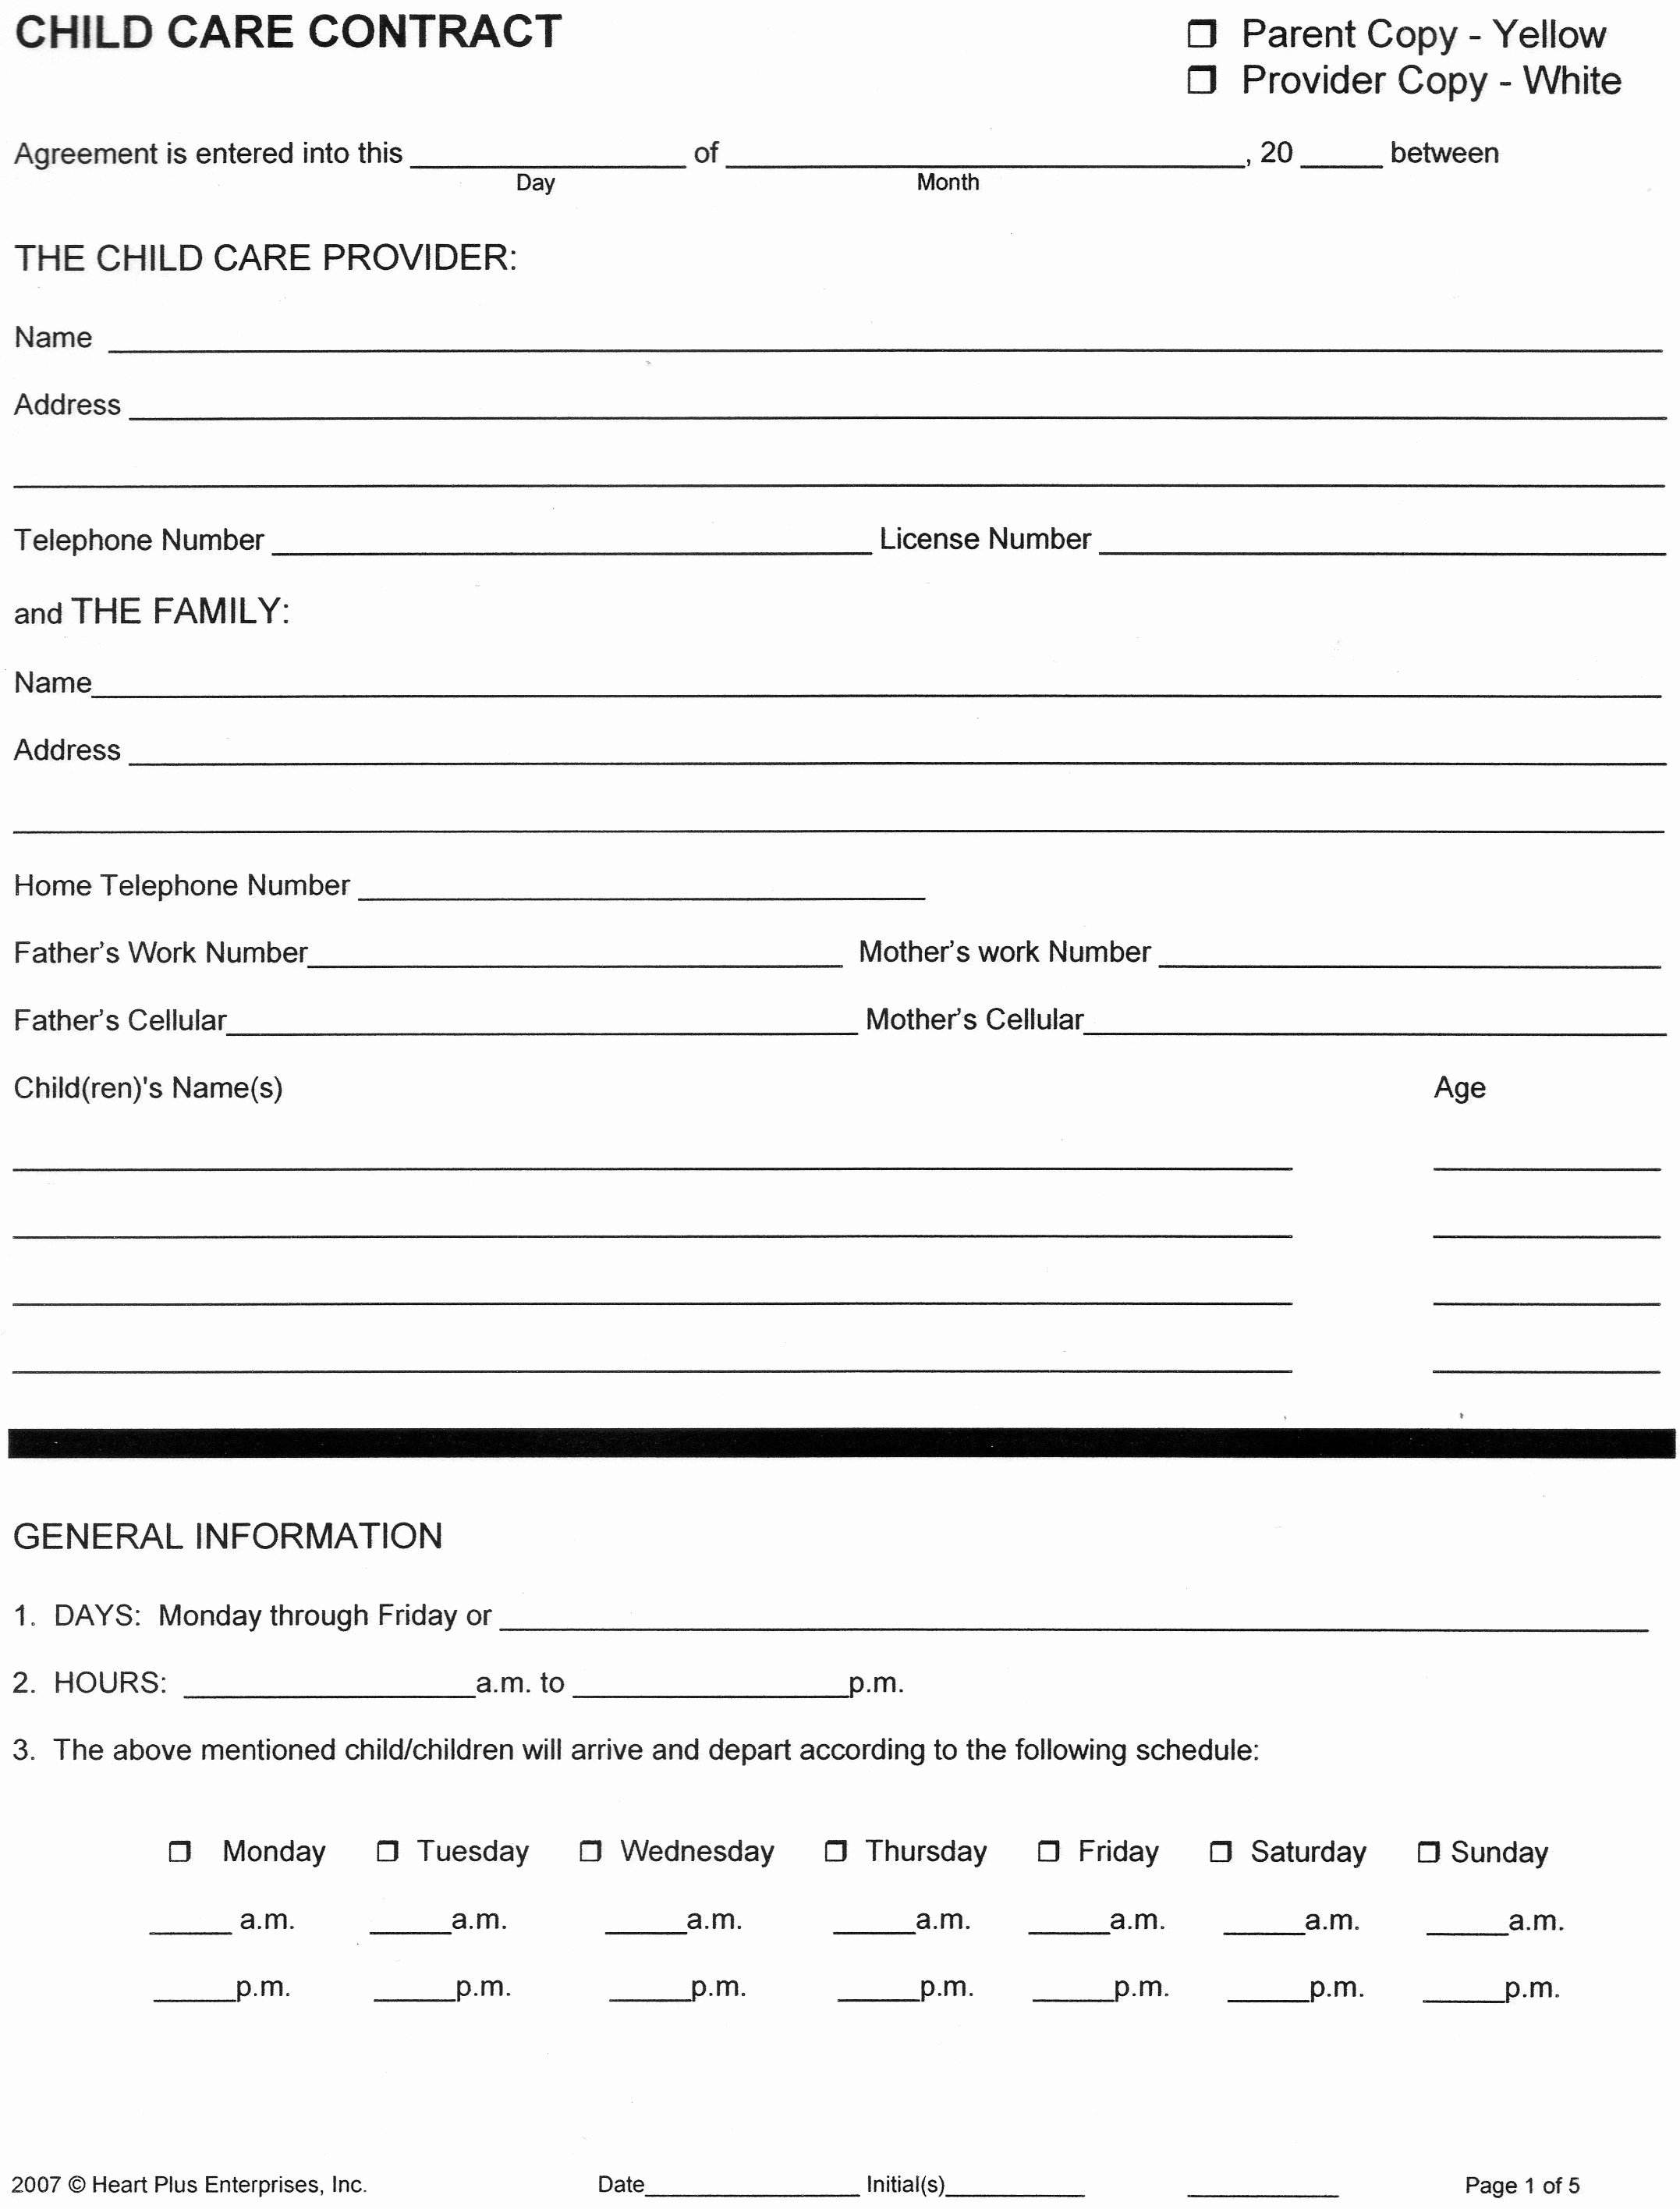 Child Care Application Template Luxury Home Child Care forms Child Care Contract 1